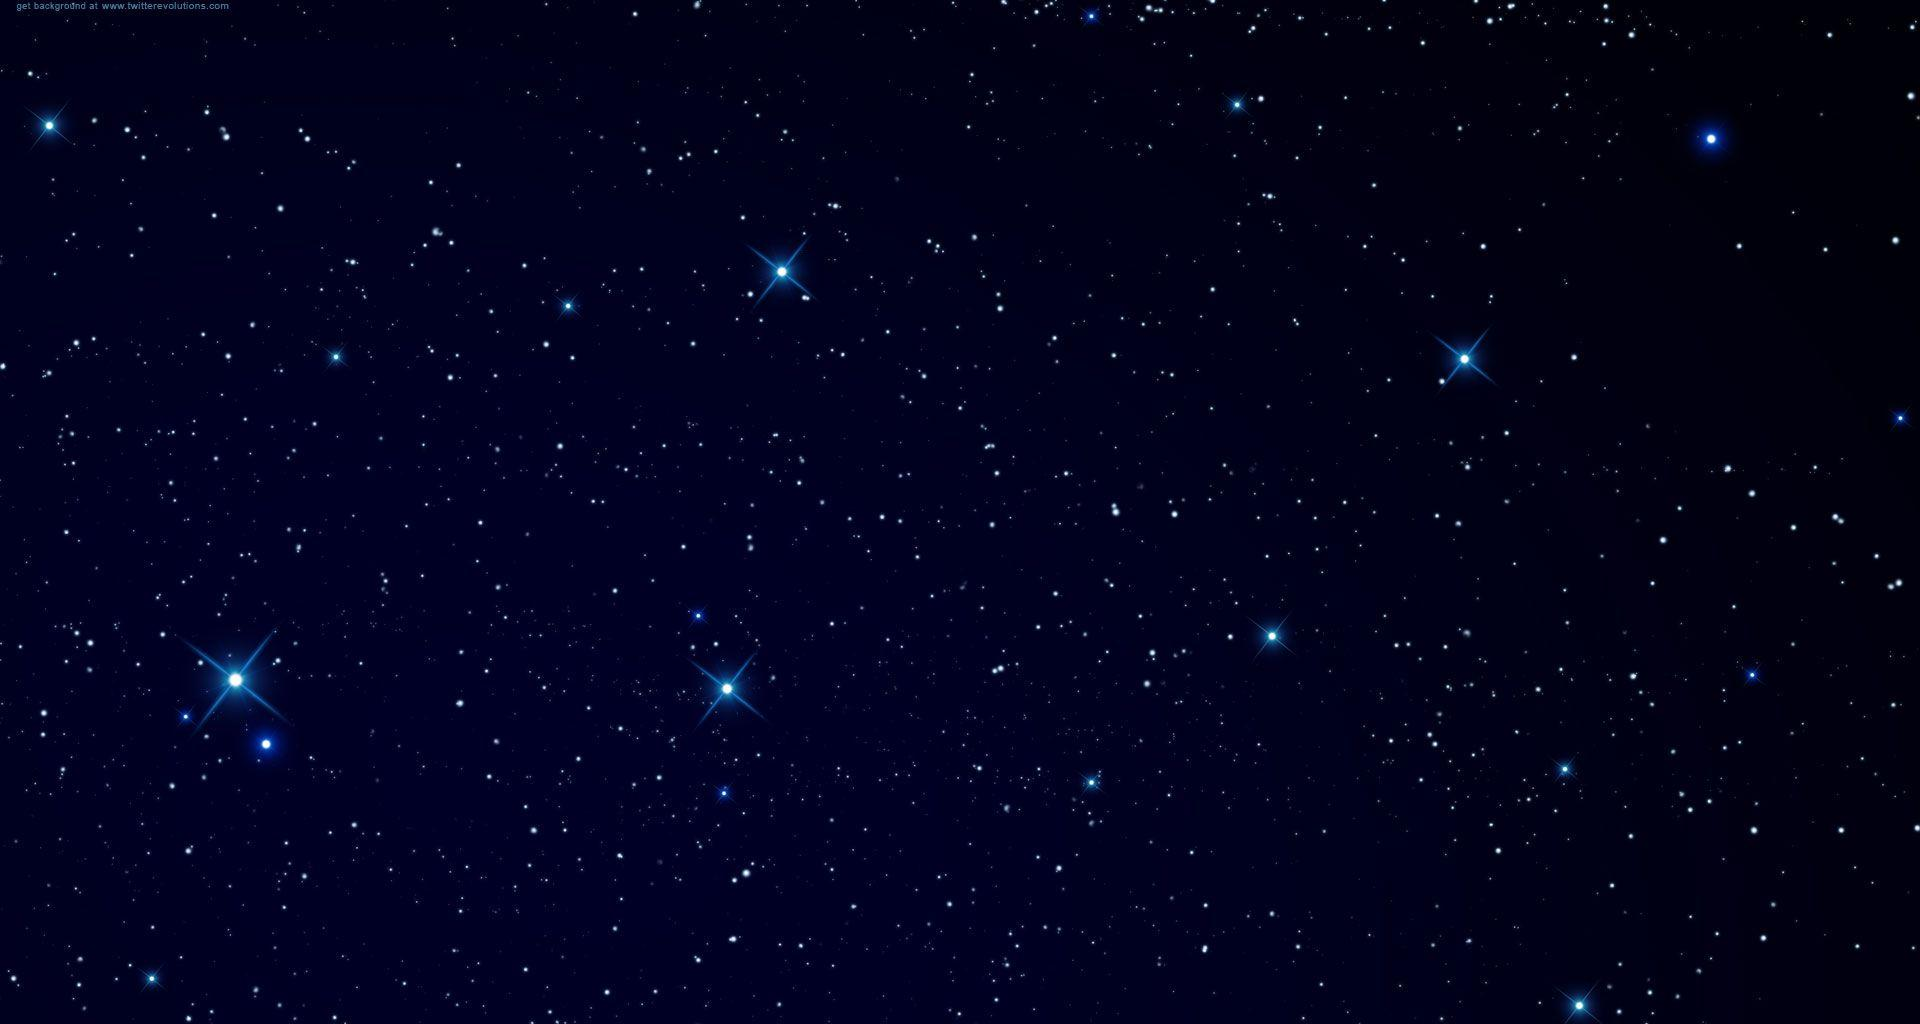 Space Star Backgrounds 1920x1024